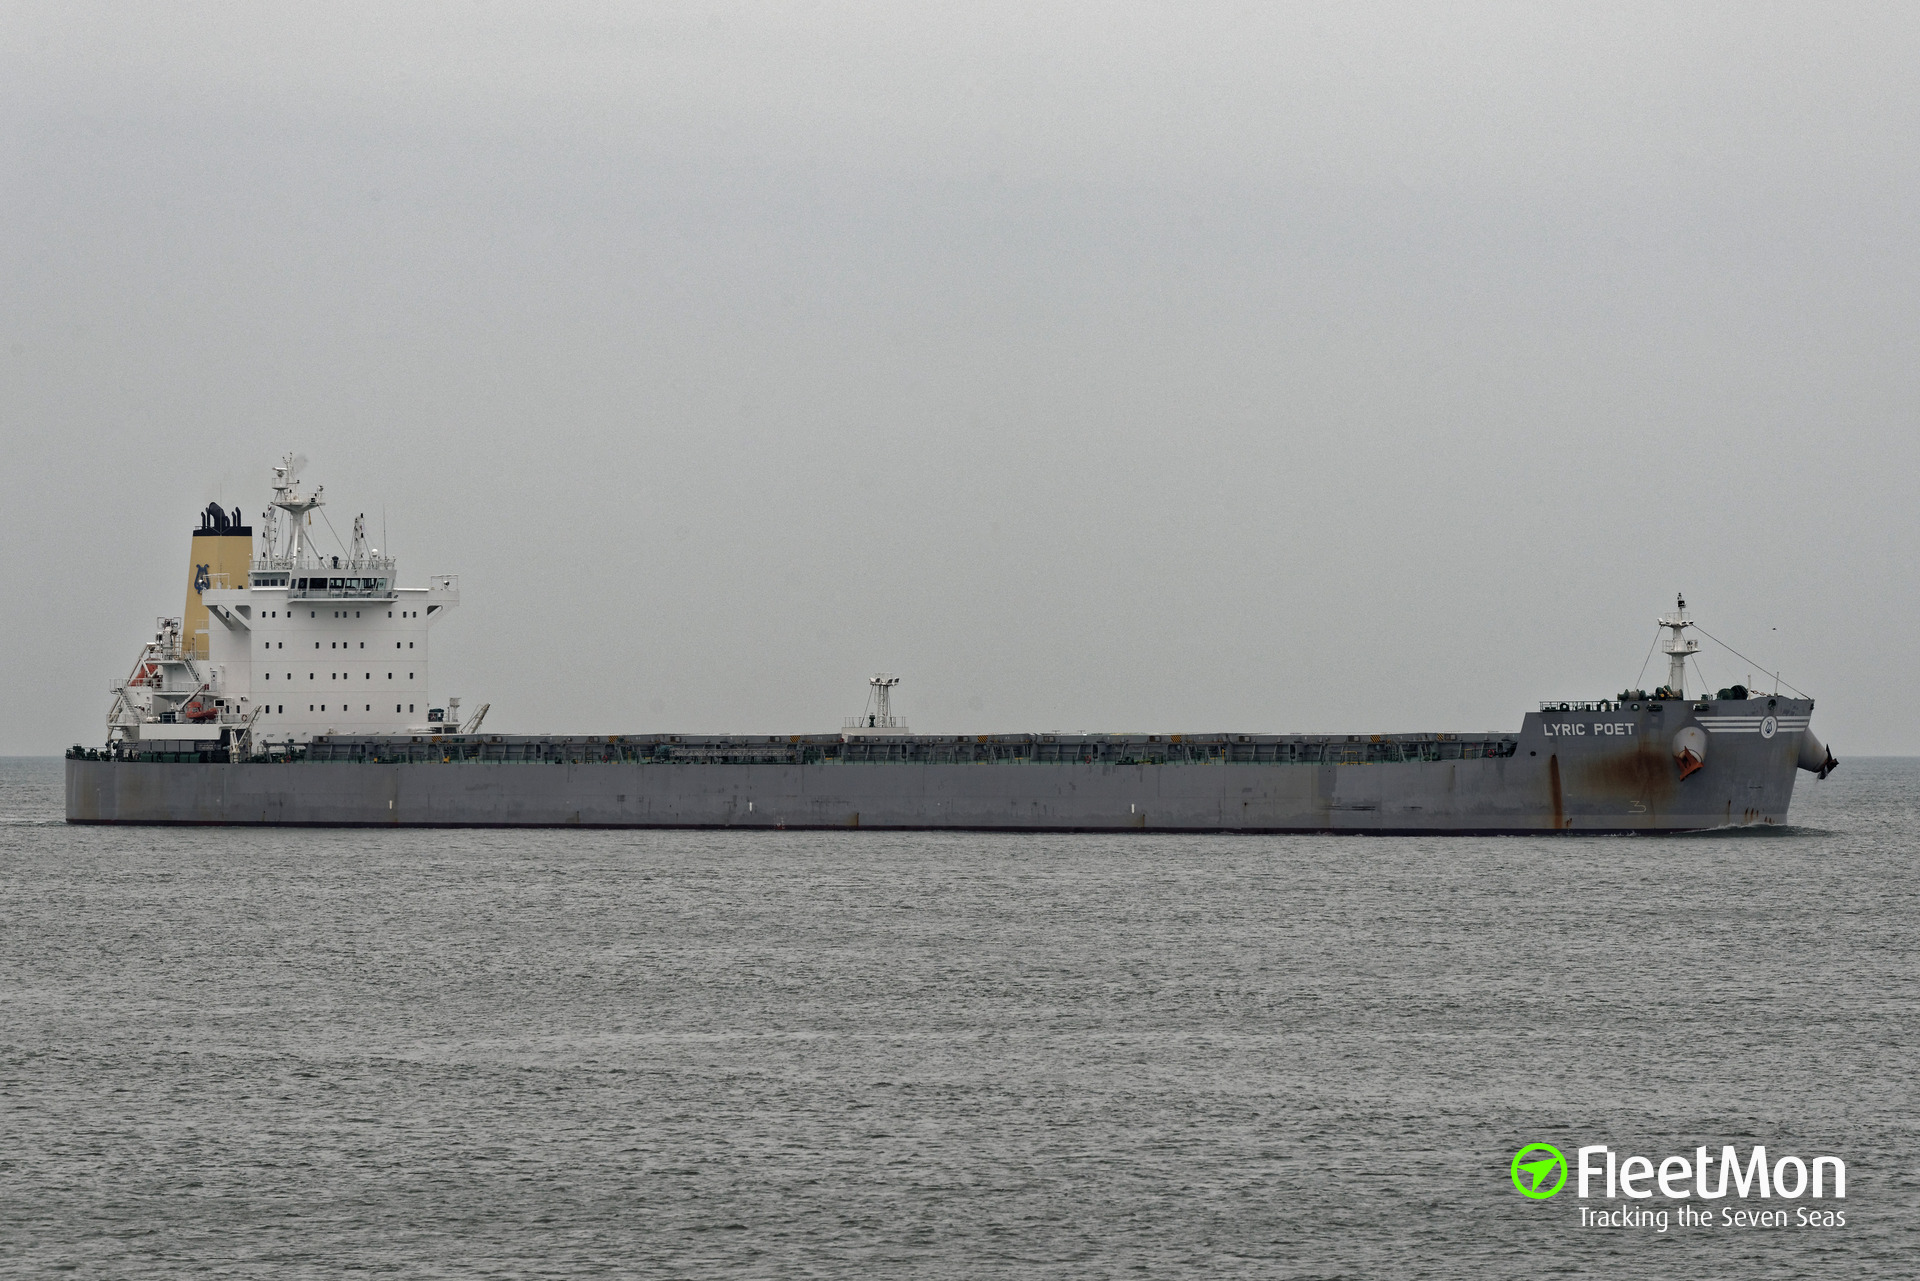 Panamax bulk carrier LYRIC POET refloated, being aground for 46 days